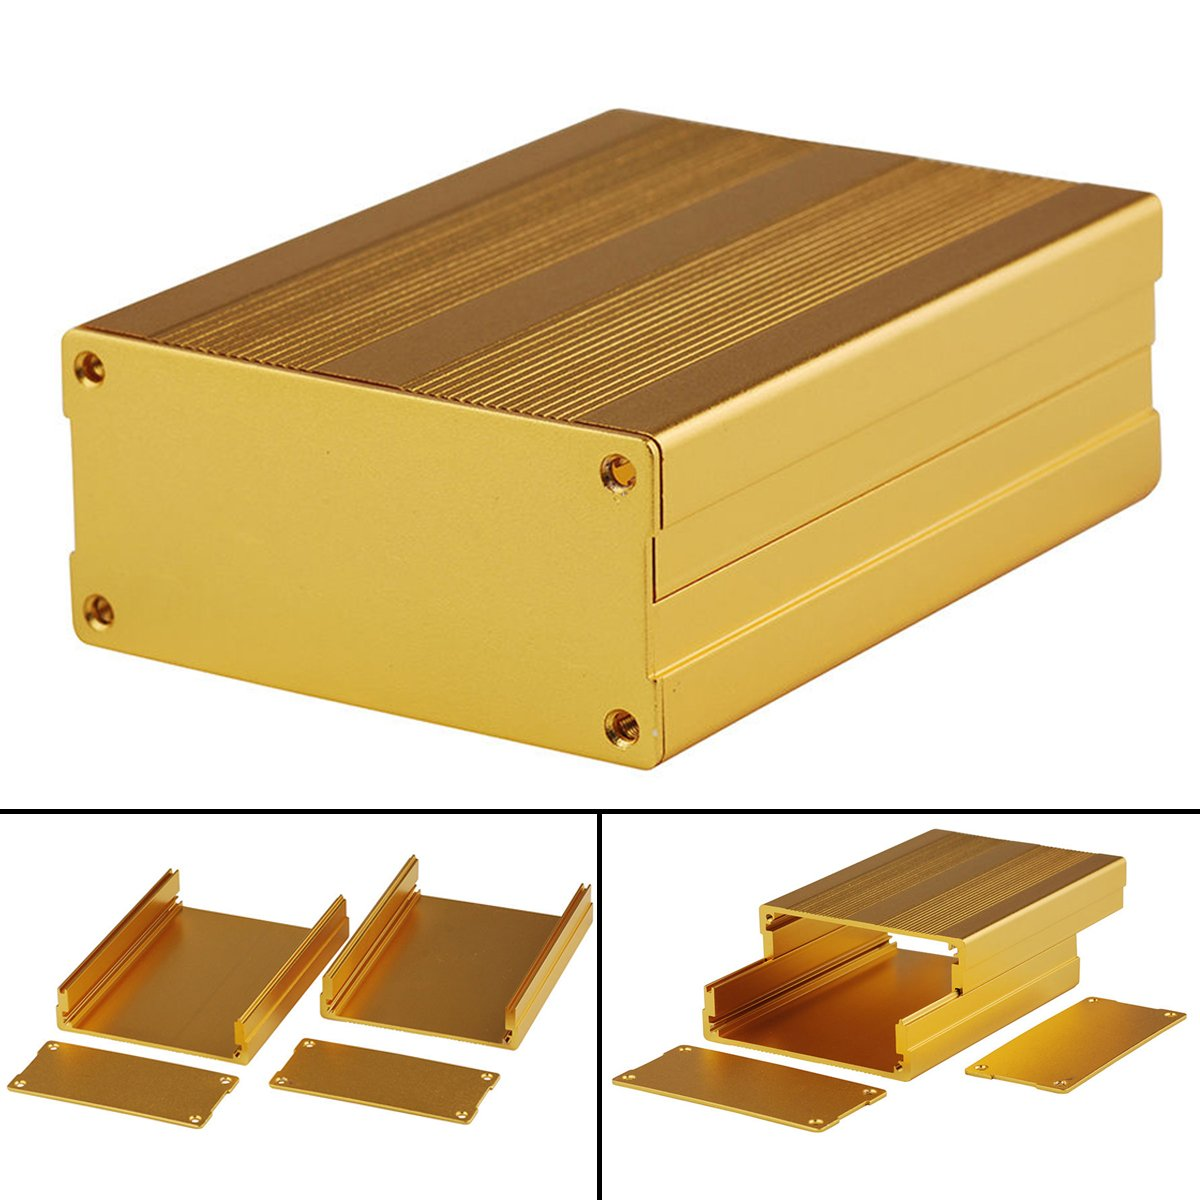 Aluminum Enclosure Box Gold Circuit Board Case For Electronic Project Amplifier 100x76x35mm